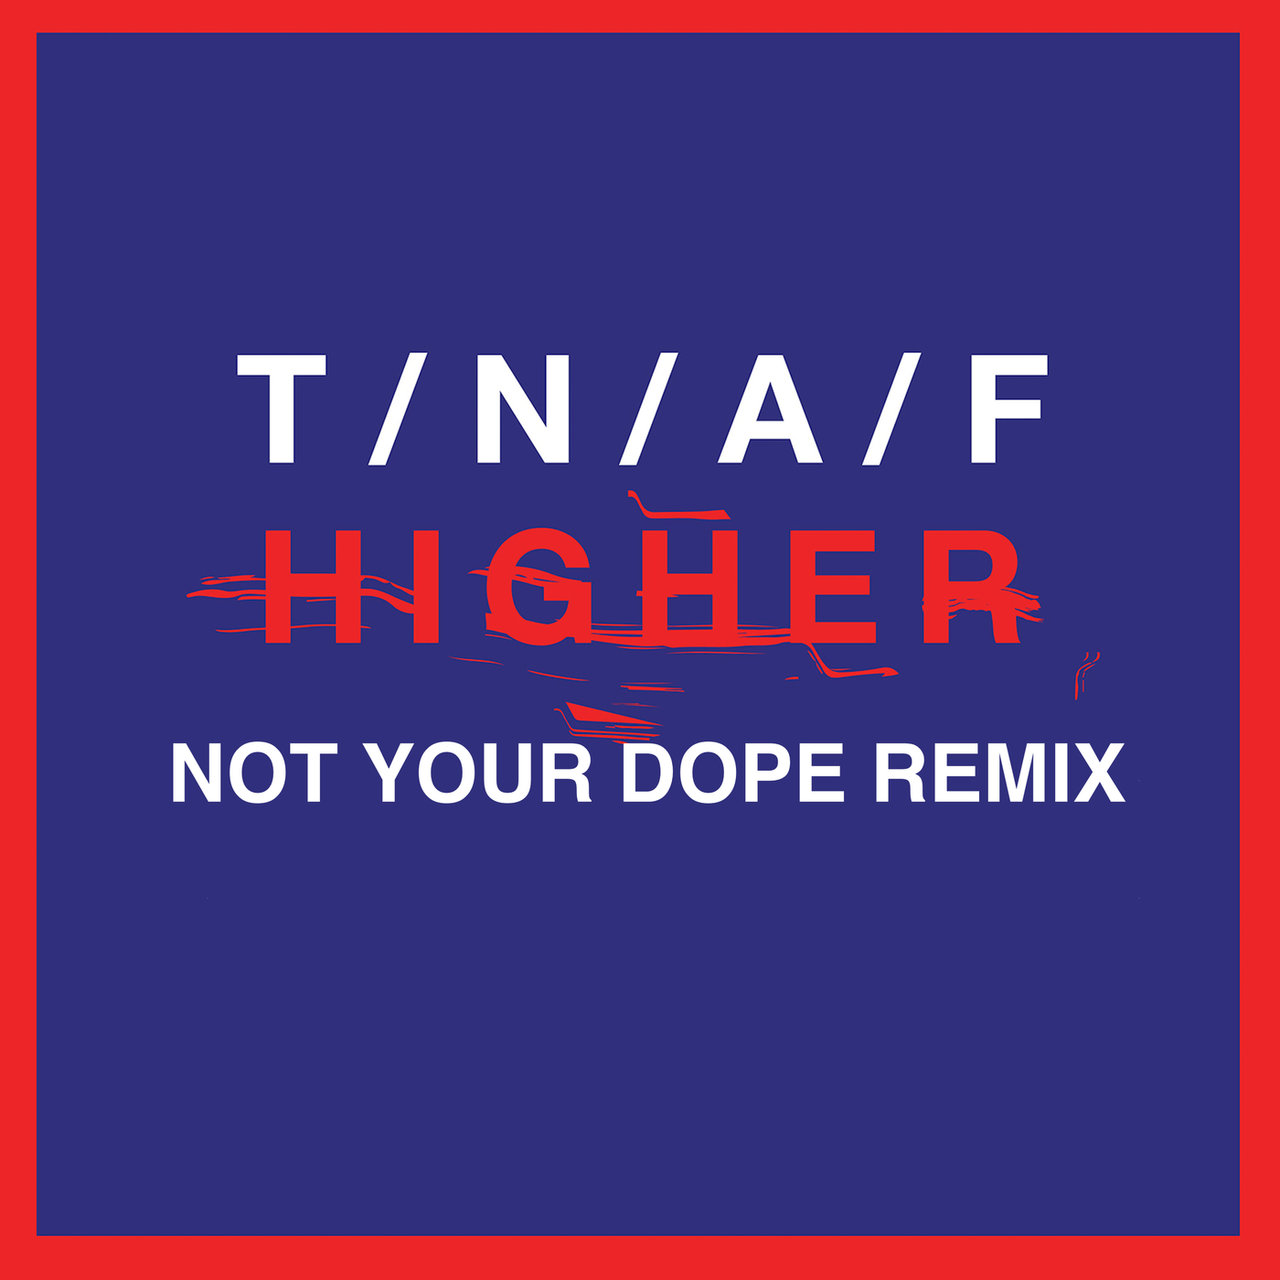 Higher (Not Your Dope Remix)